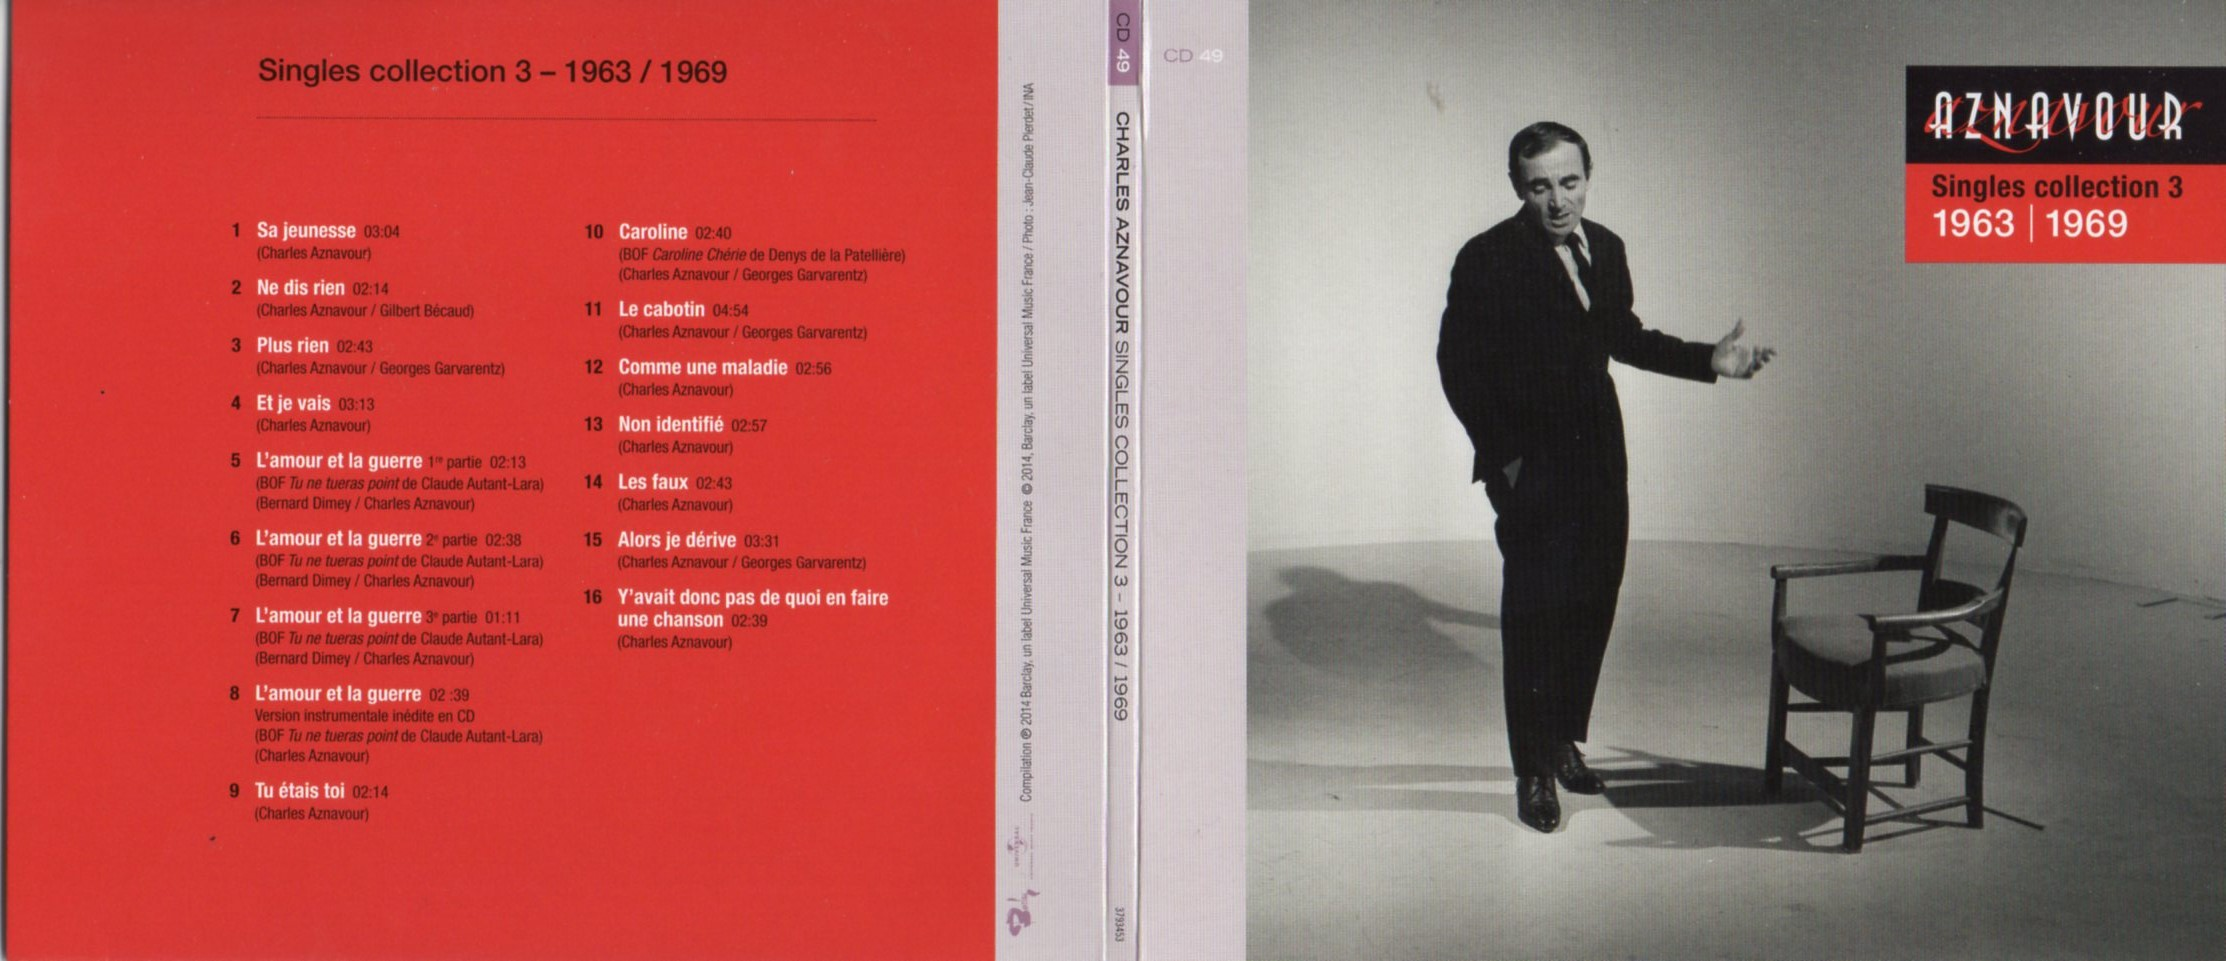 CHARLES AZNAVOUR - Singles Collection 3 - 1963 / 1969  Gatefold Card board sleeve - CD